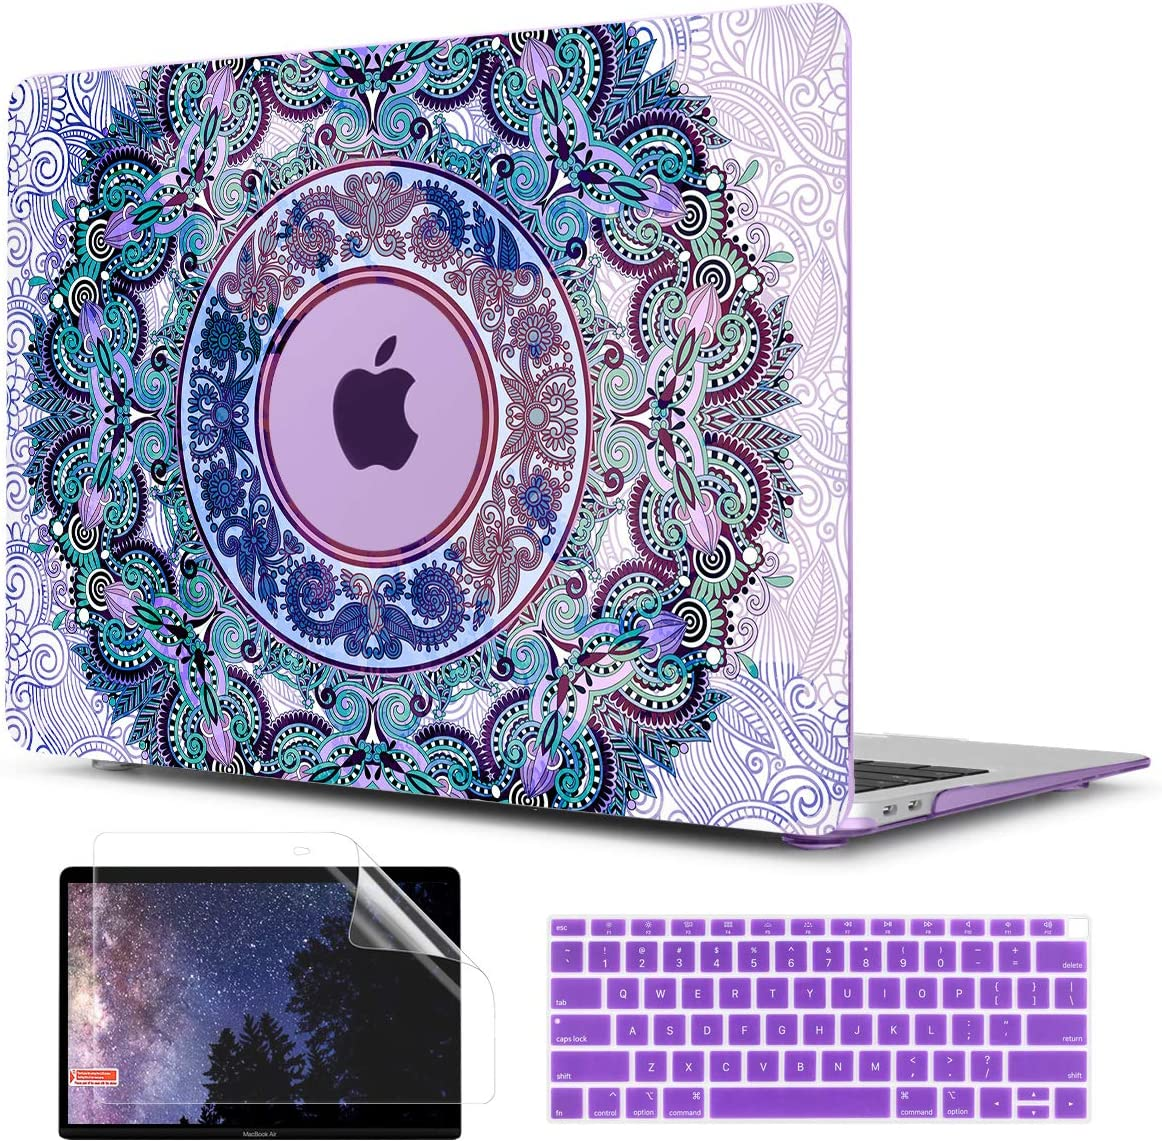 TwoL Purple Mandala Hard Shell Case Keyboard Skin Screen Protector for New MacBook Air 13 inch 2018 2019 2020 Model A1932 A2179 with Touch ID